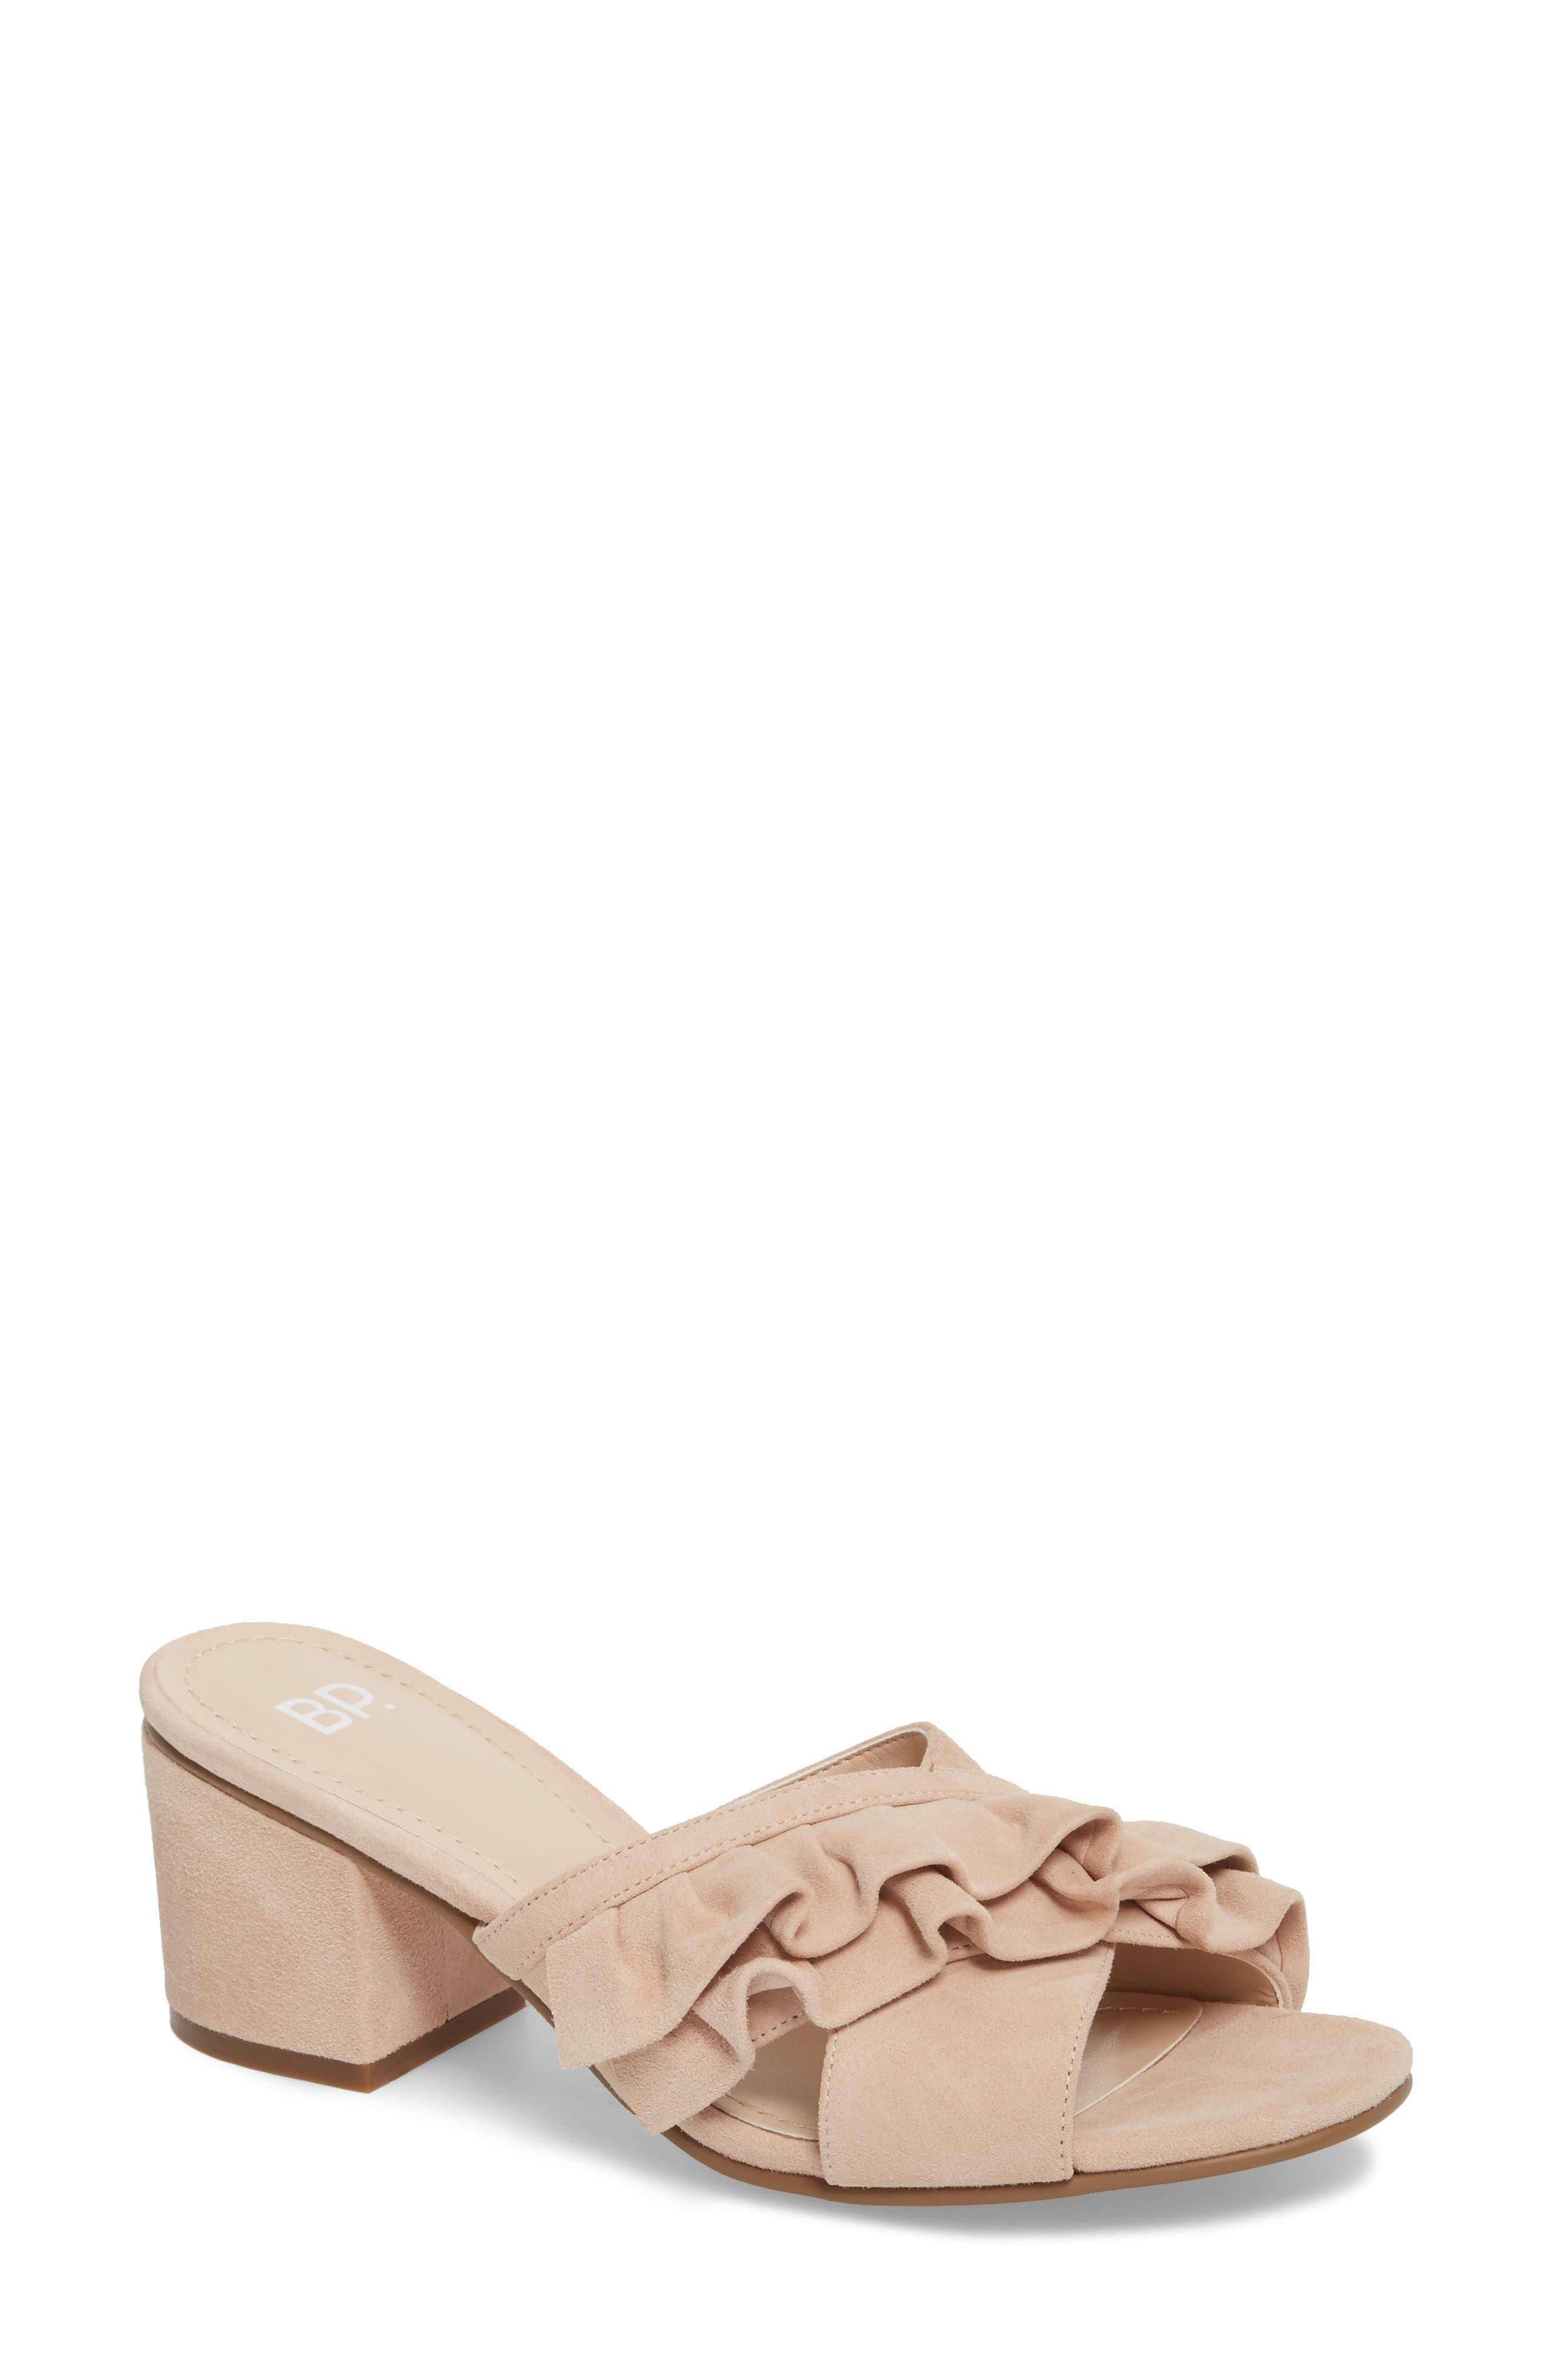 BP. Shari Ruffle Strap Slide Sandal (Women)